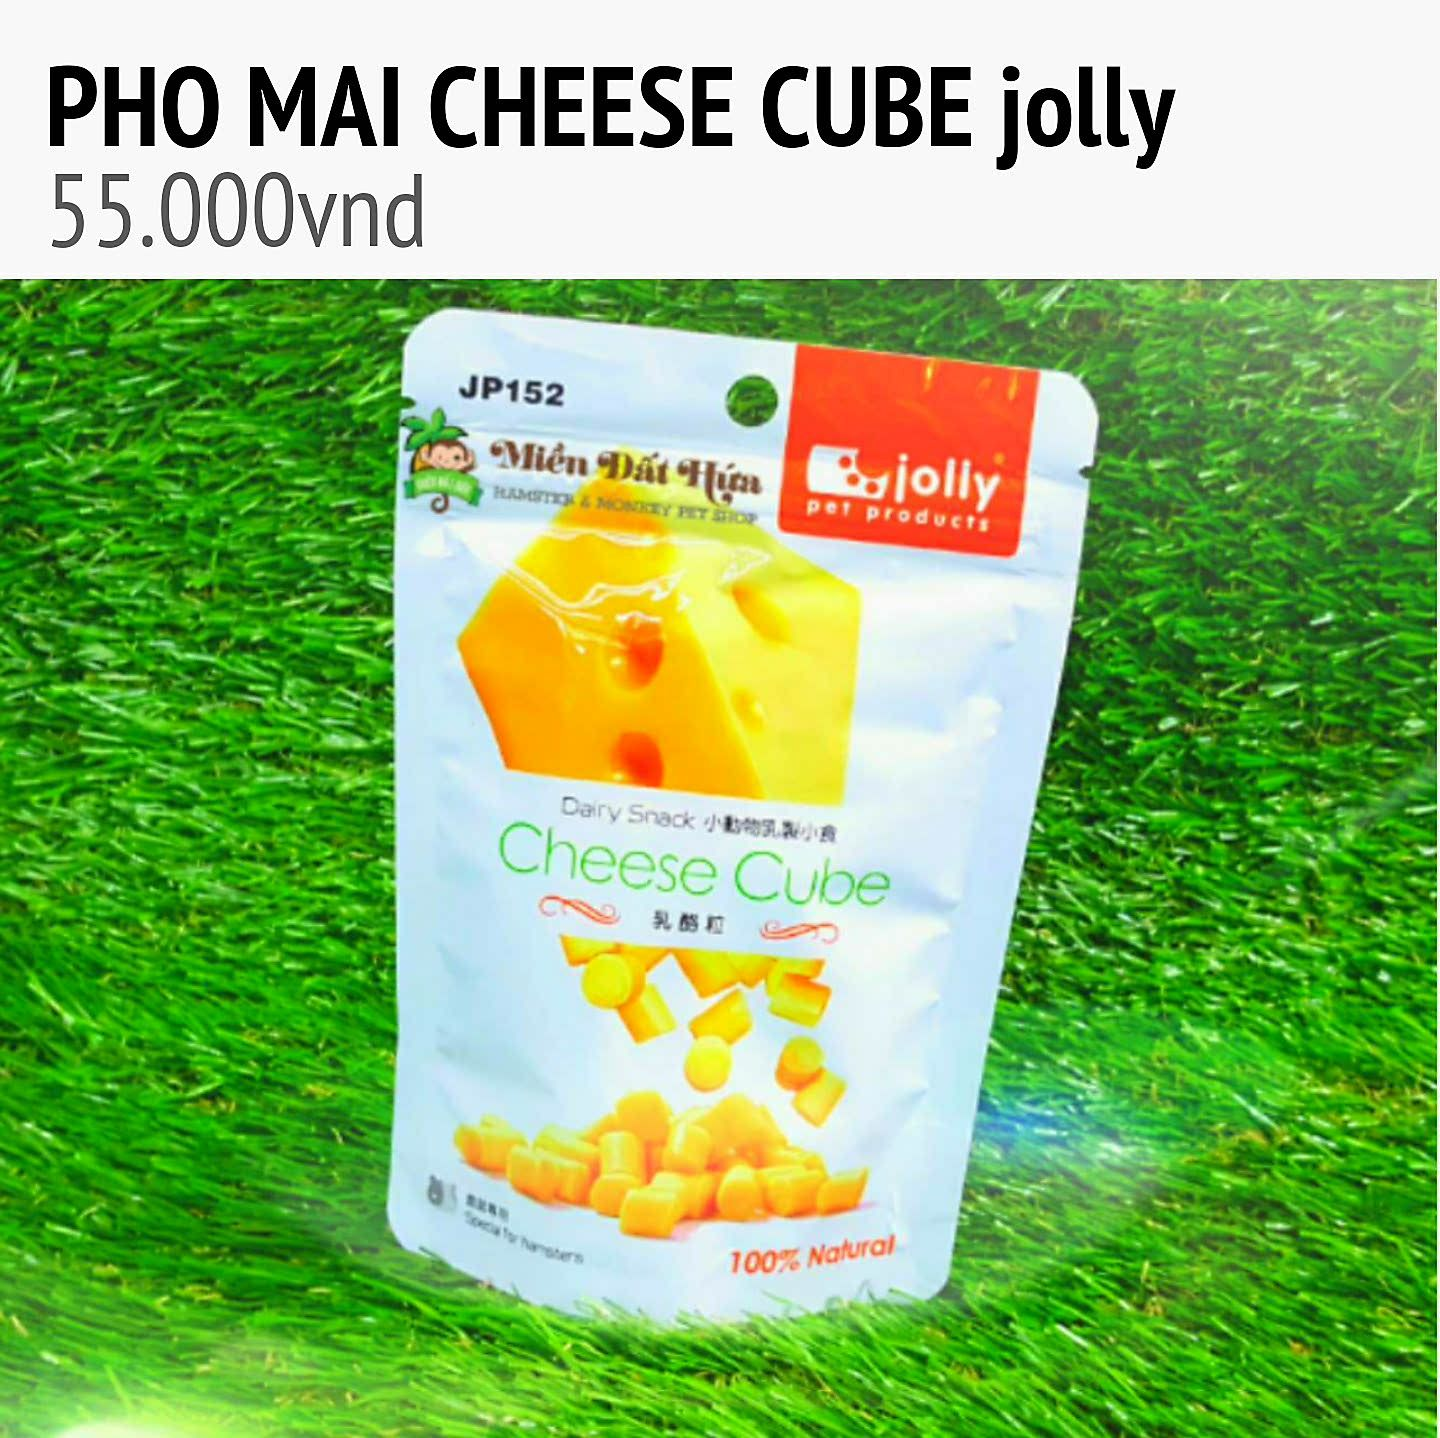 cheese cube jolly cho guinea pig,thỏ,hamster